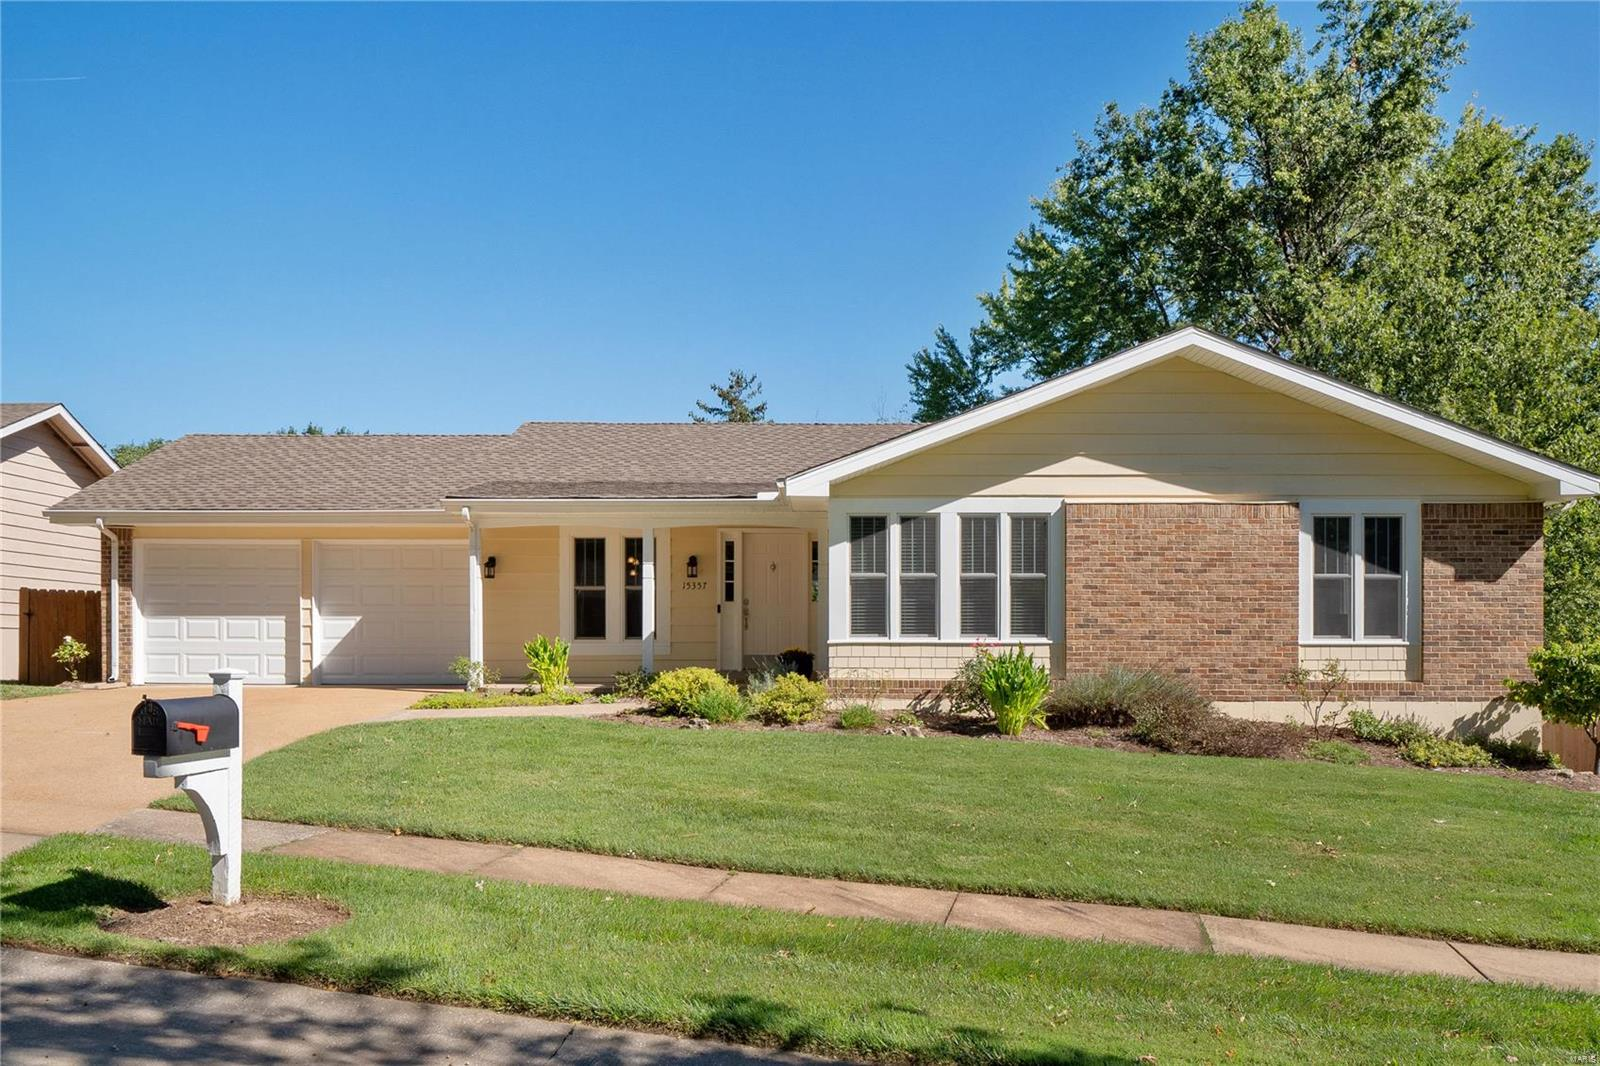 15357 Thistlebriar, Chesterfield, MO 63017